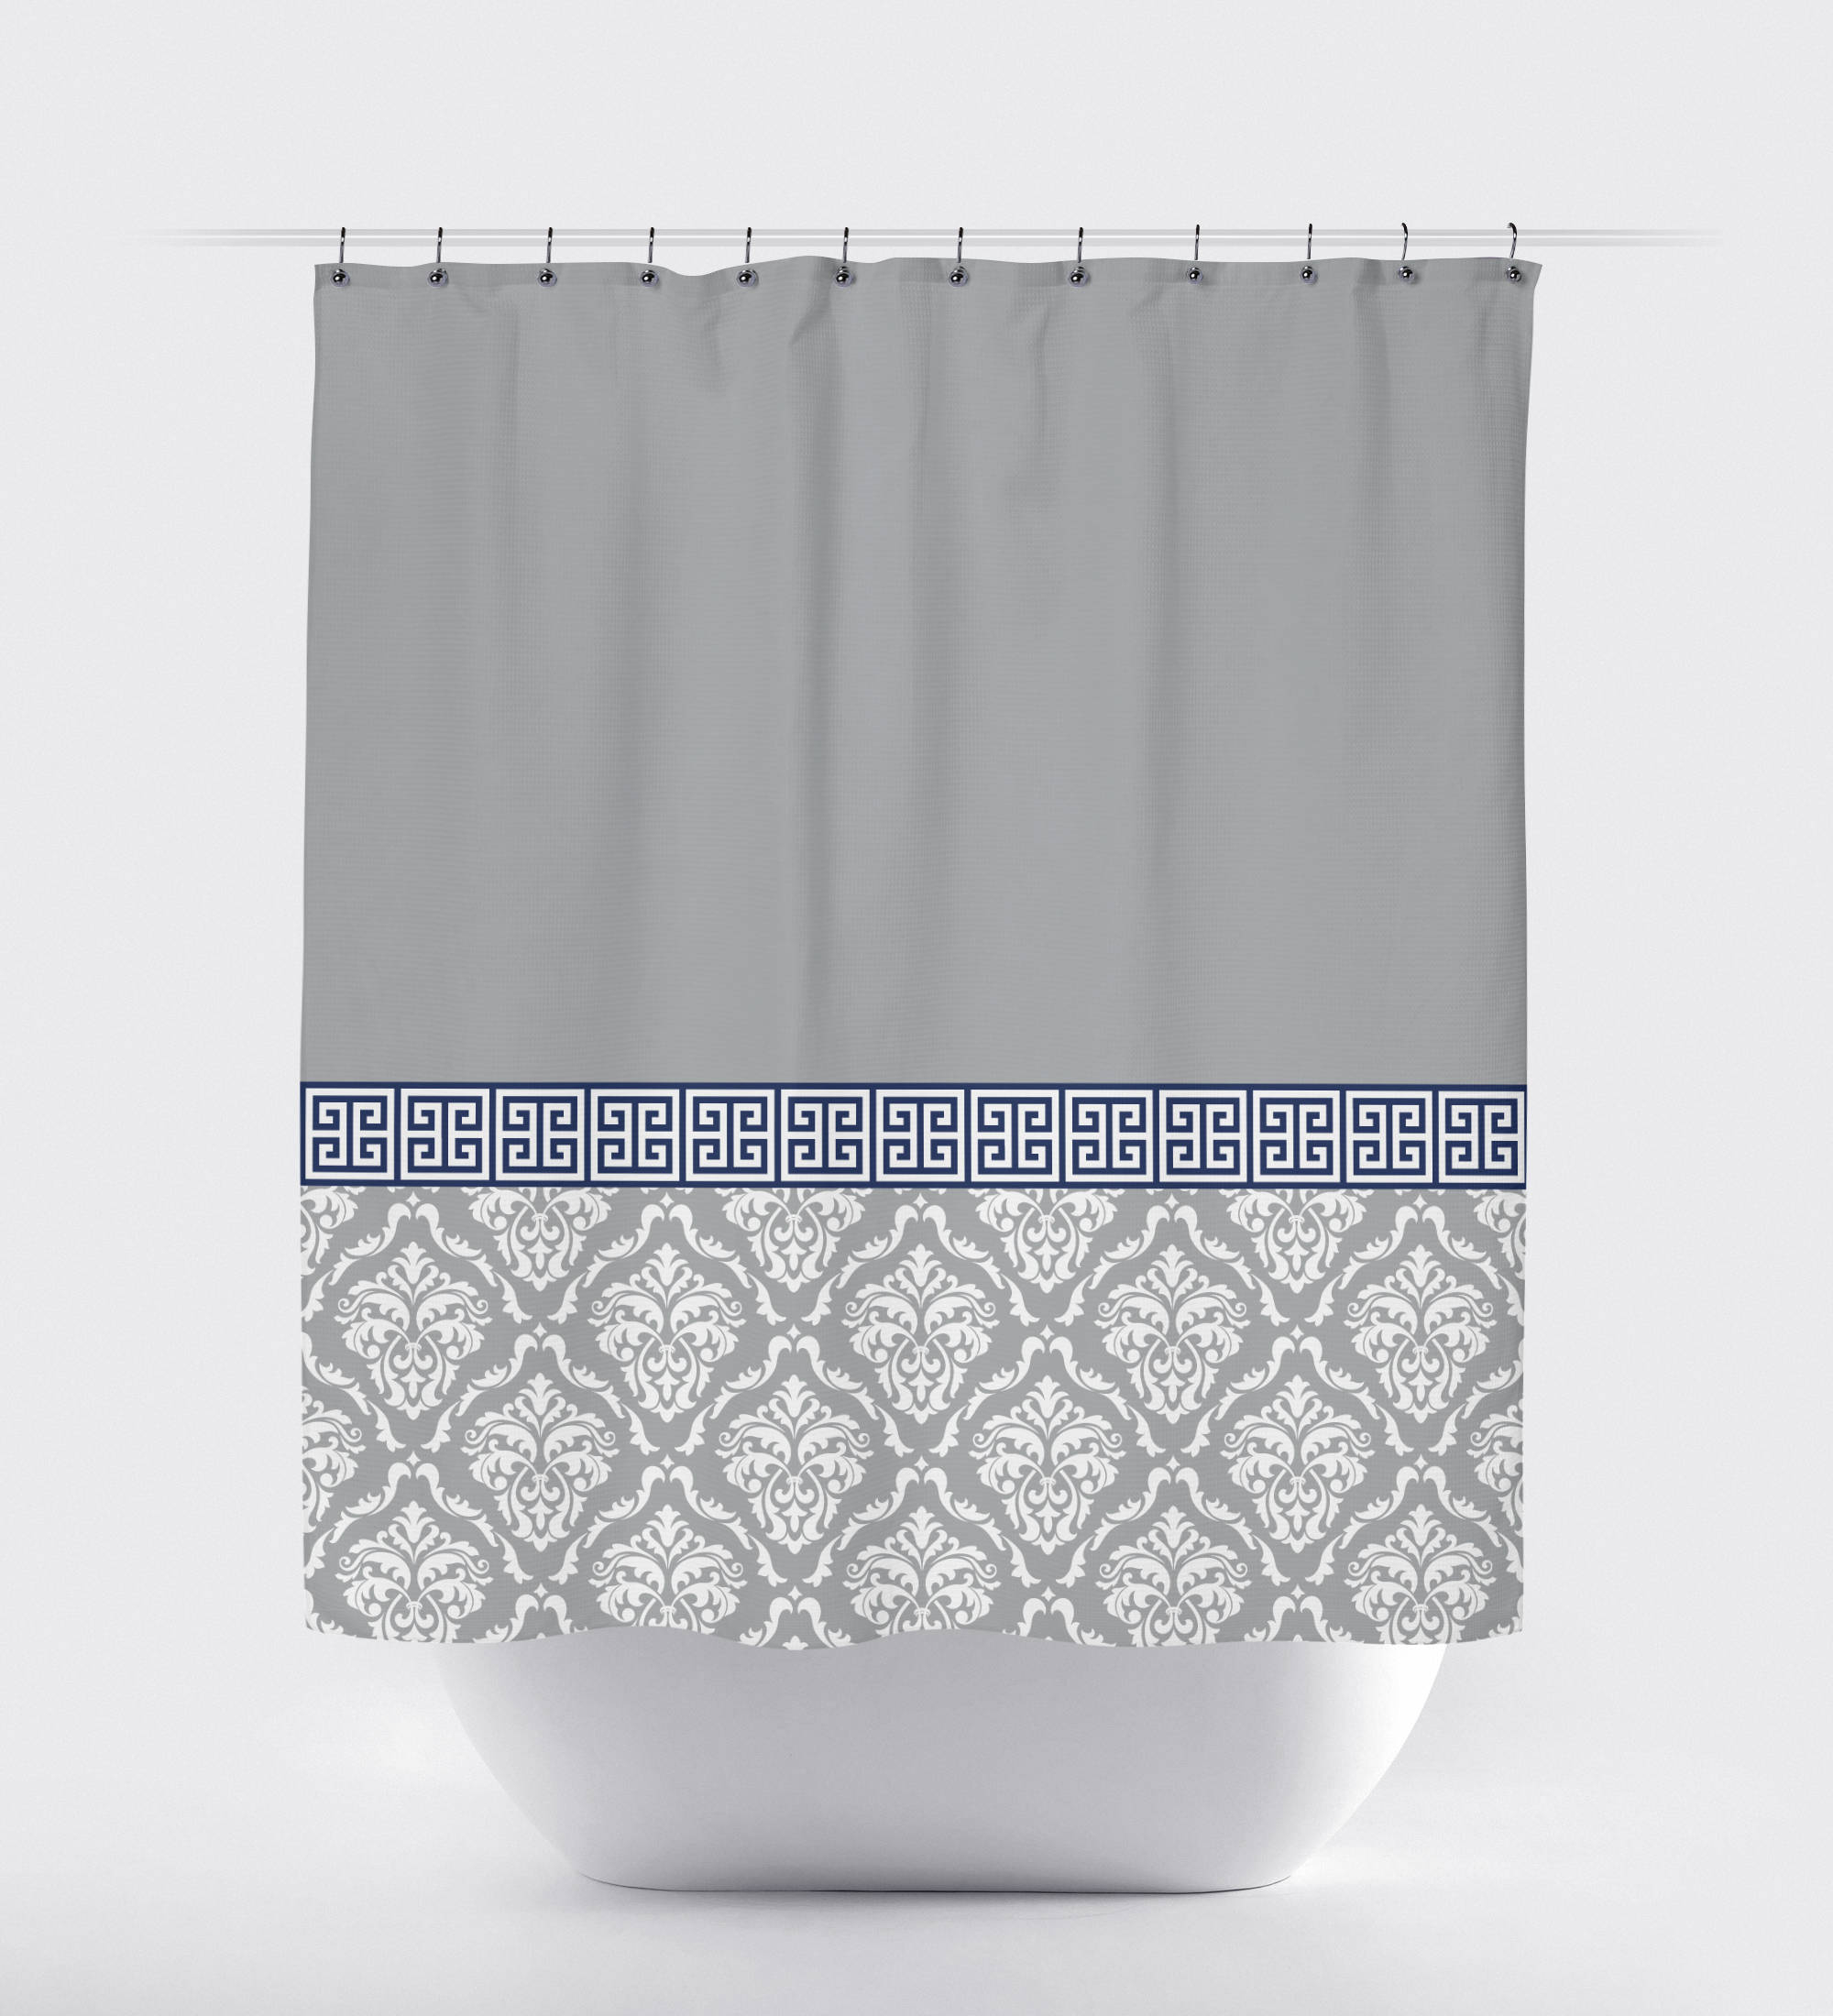 Damask And Greek Key Shower Curtain Grey Navy Blue White Or throughout sizing 2000 X 2200